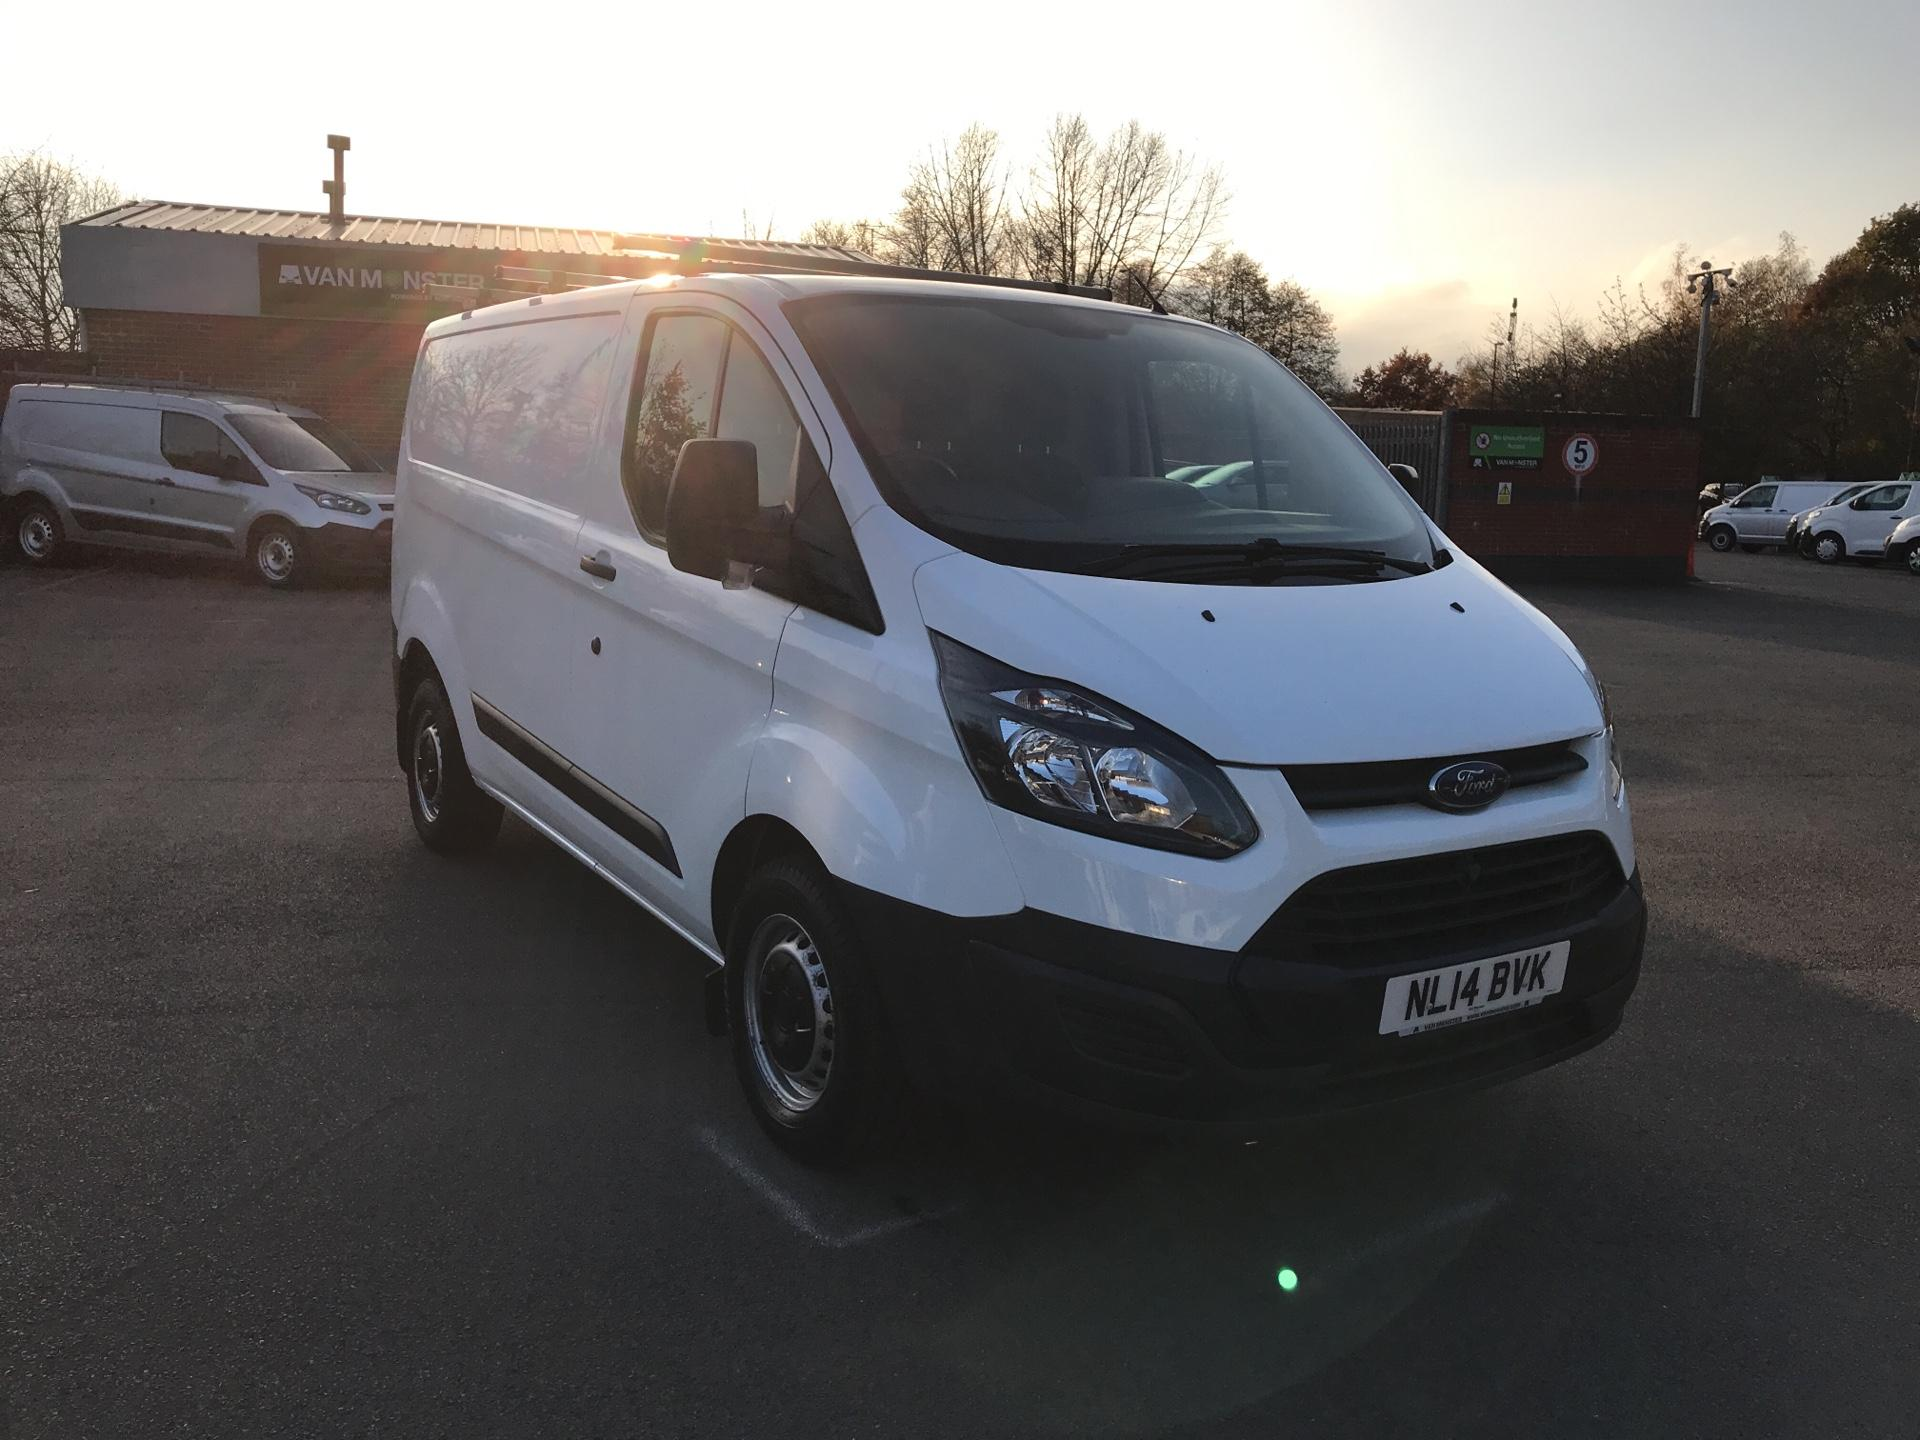 2014 Ford Transit Custom 2.2 Tdci 100Ps Low Roof Van (NL14BVK)